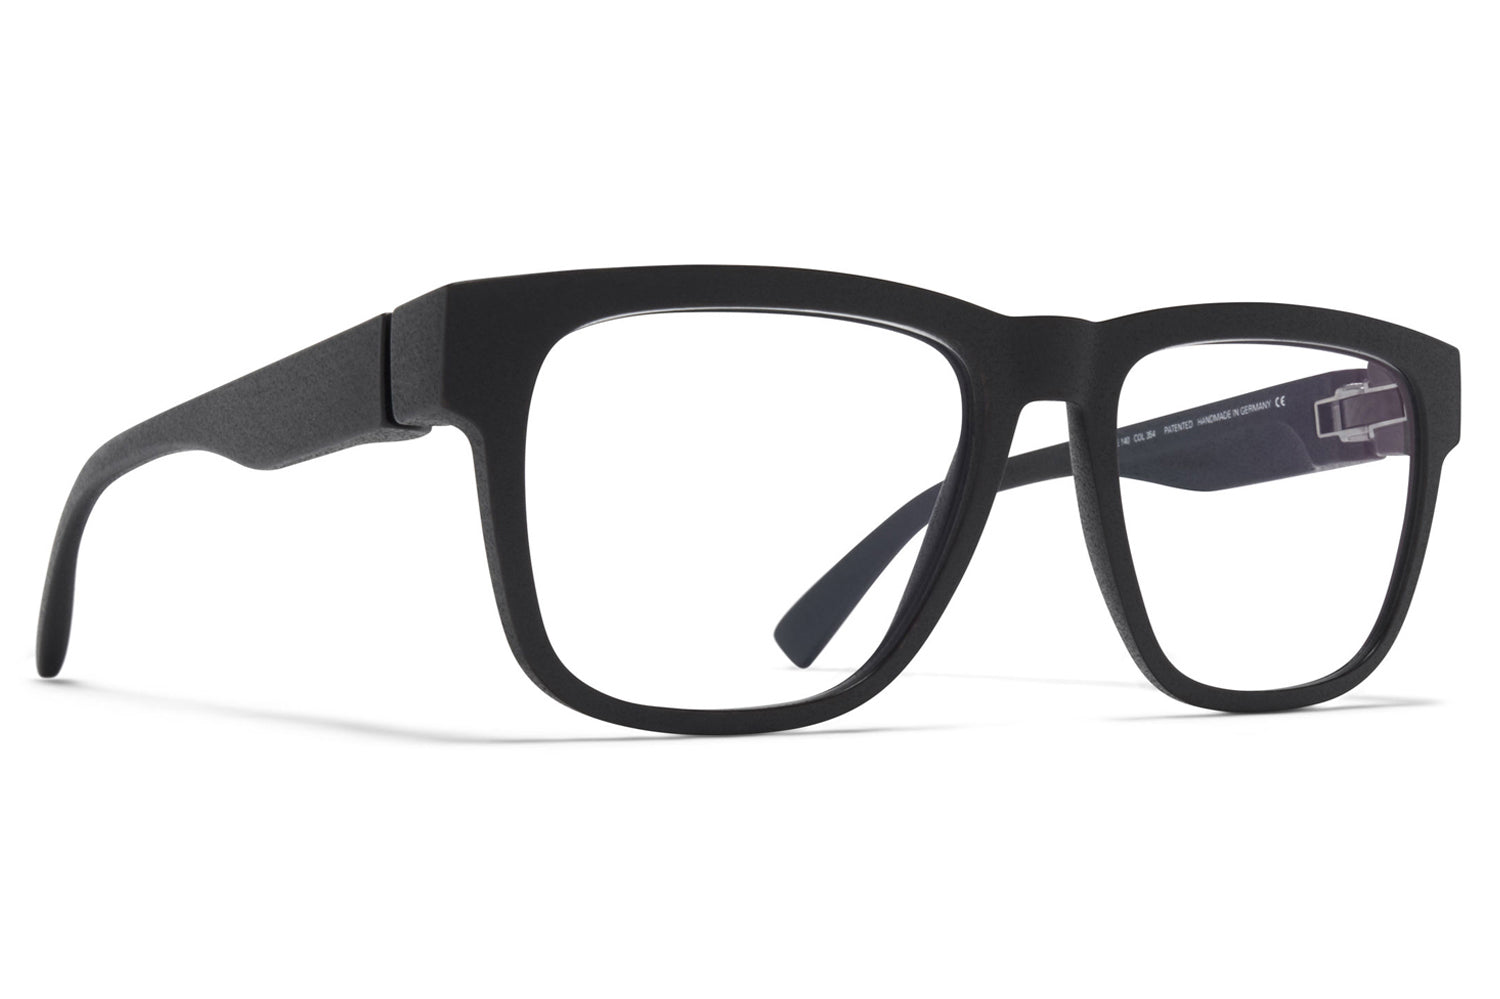 MYKITA Mylon - Surge Eyeglasses MD1 - Pitch Black